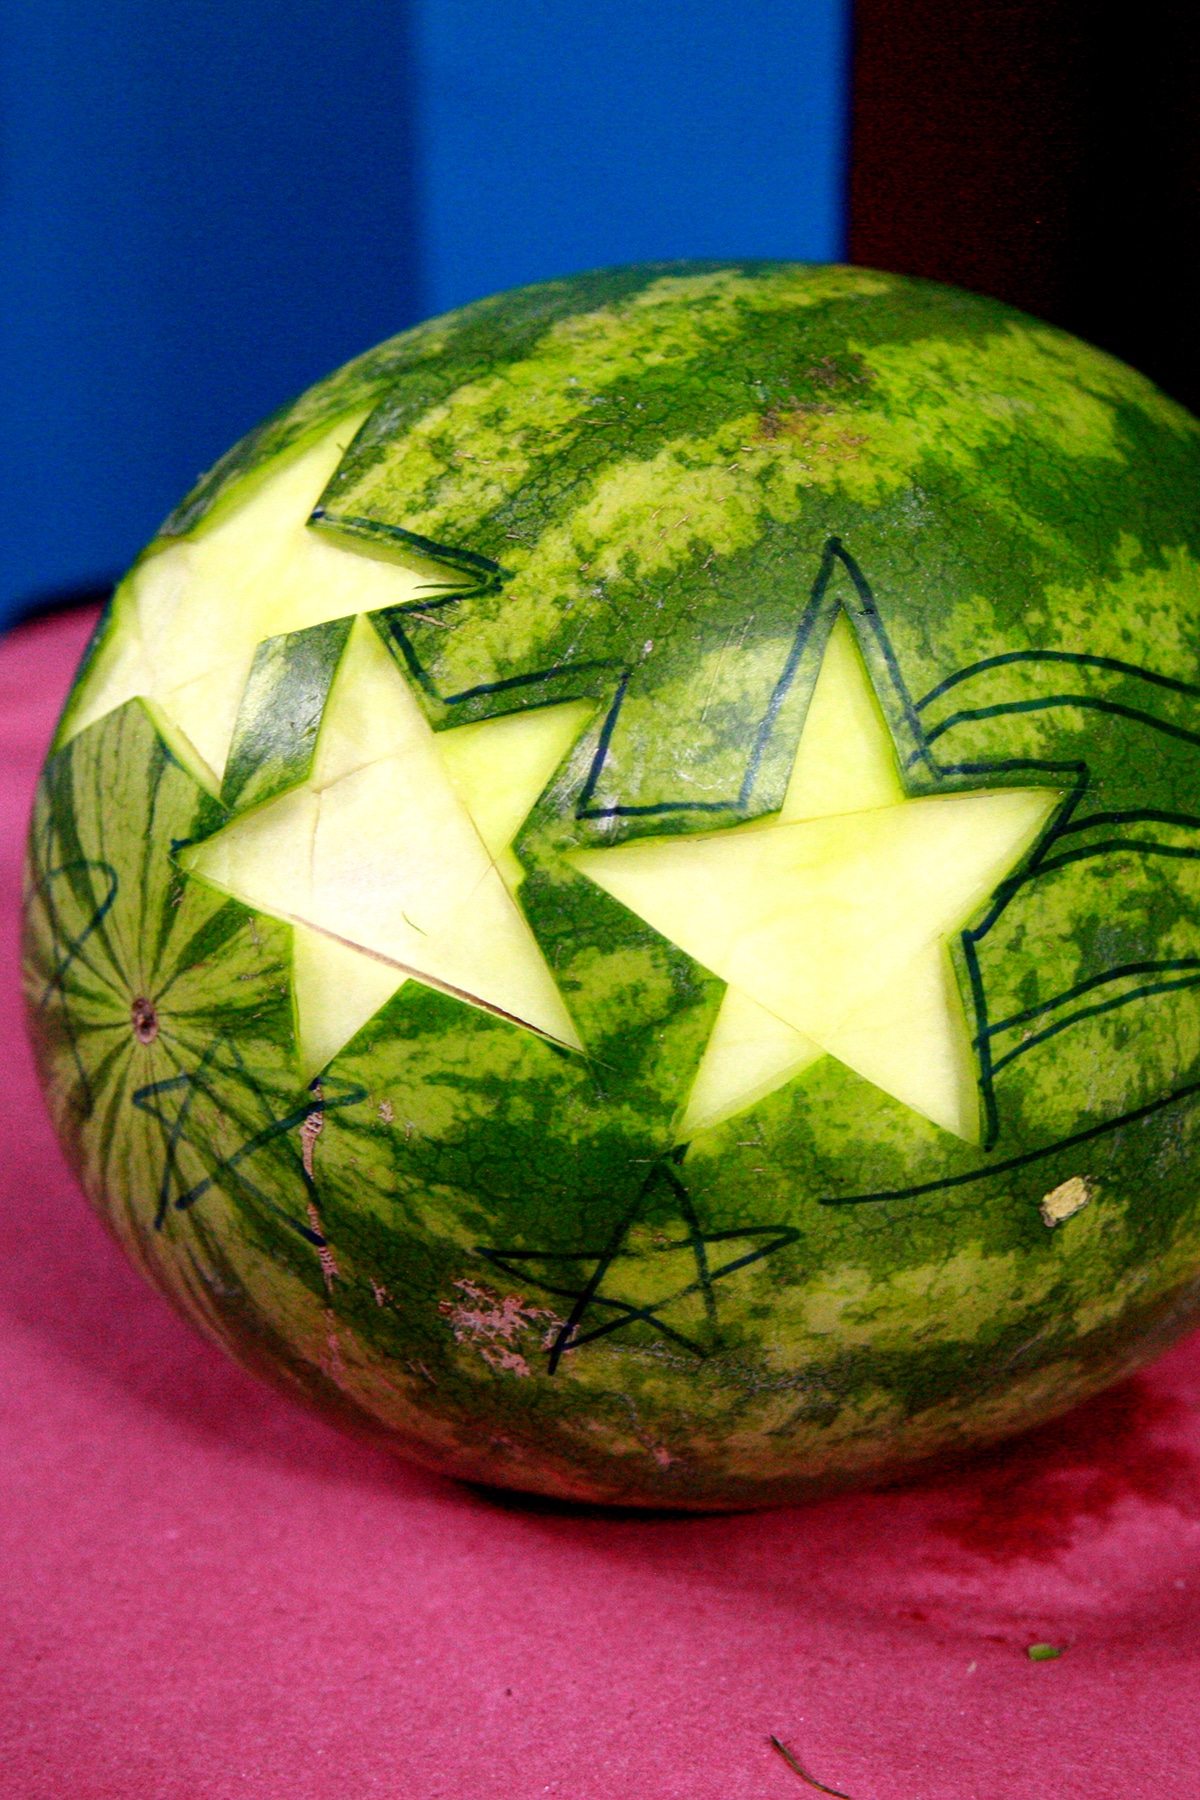 3 star shapes have been cut and carved out of a watermelon rind.